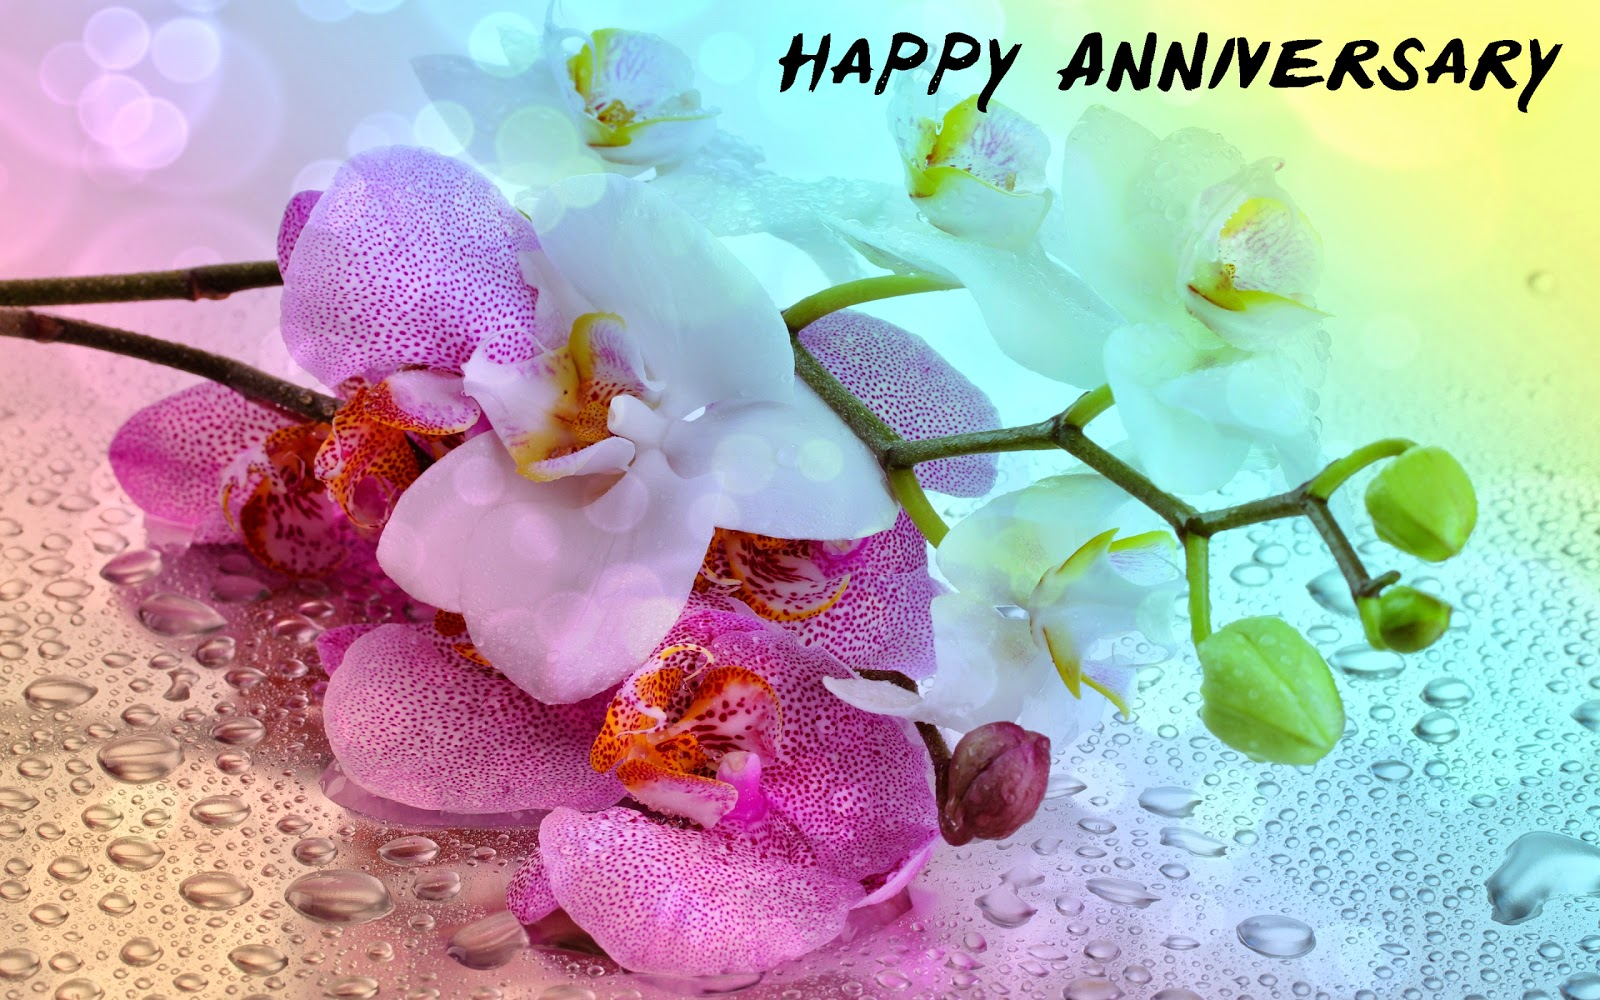 Wallpaper download marriage anniversary - Photo Of Happy Anniversary